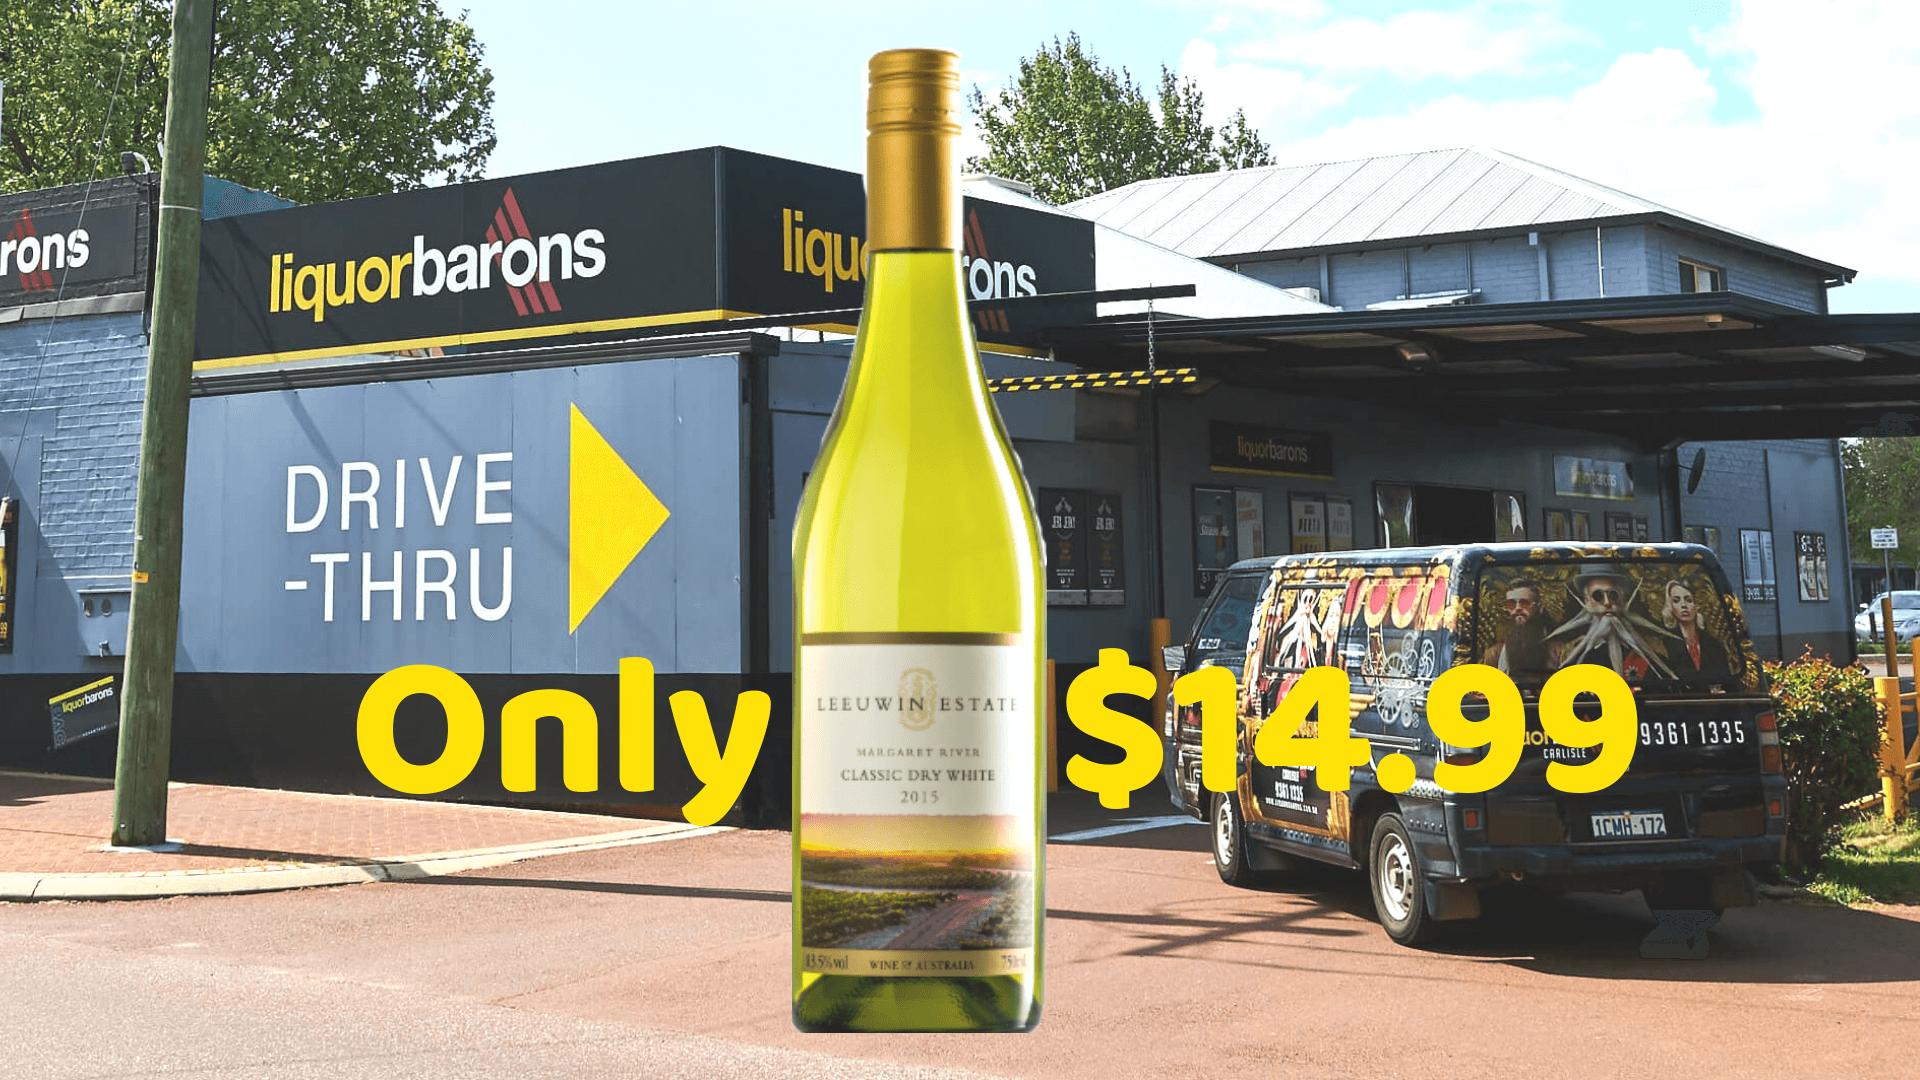 leeuwin-estate-classic-dry-white.png